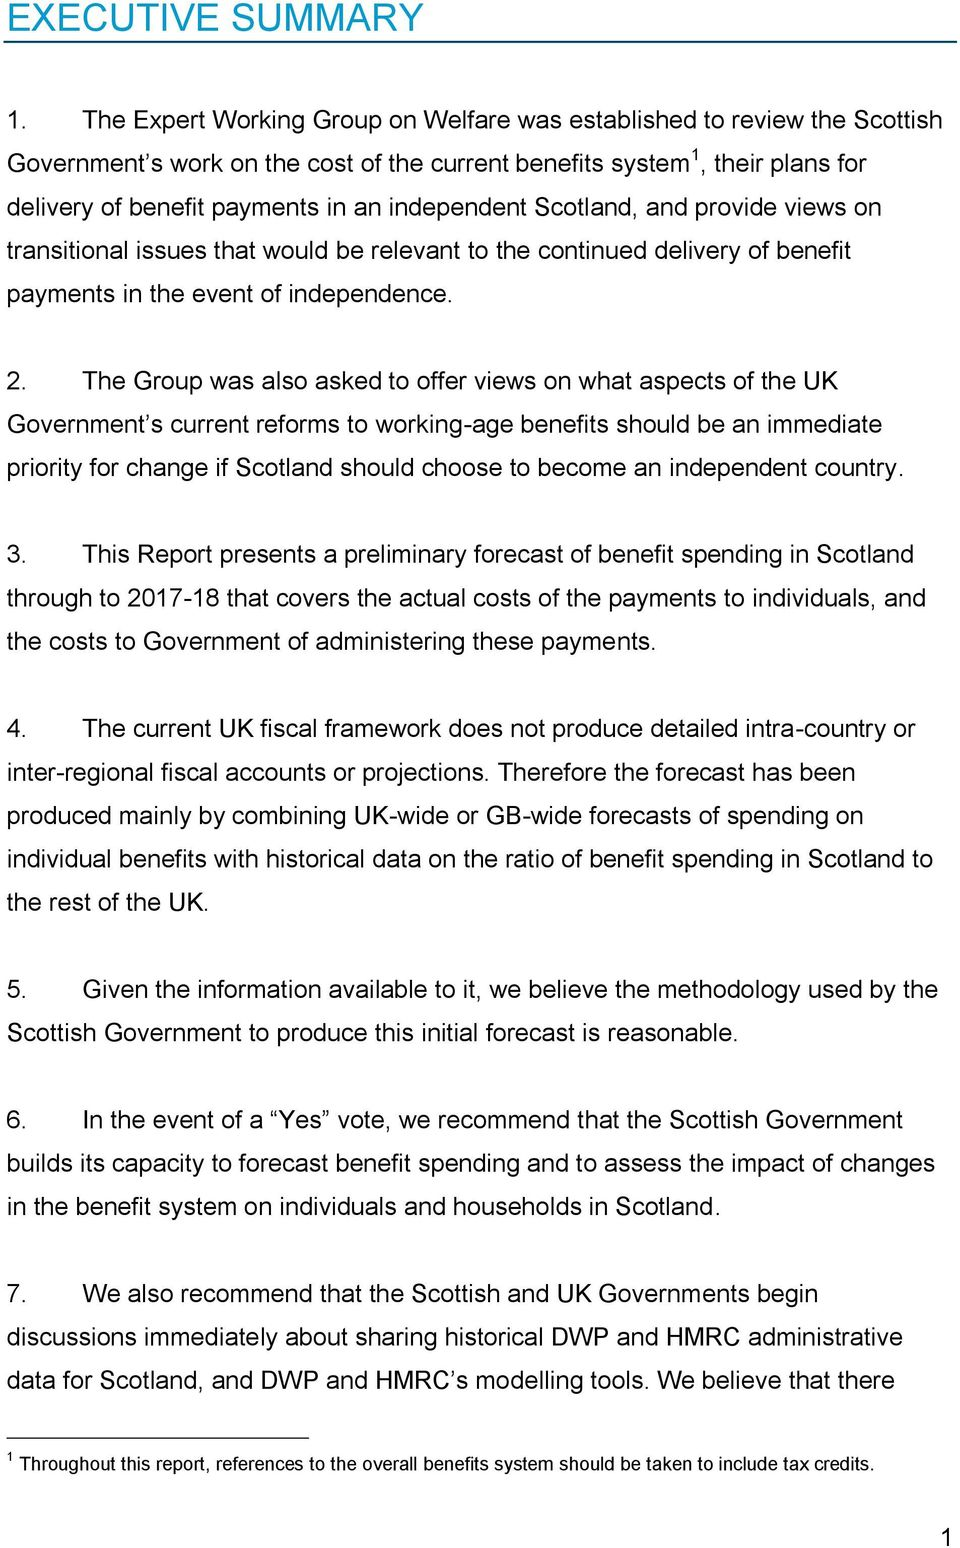 independent Scotland, and provide views on transitional issues that would be relevant to the continued delivery of benefit payments in the event of independence. 2.